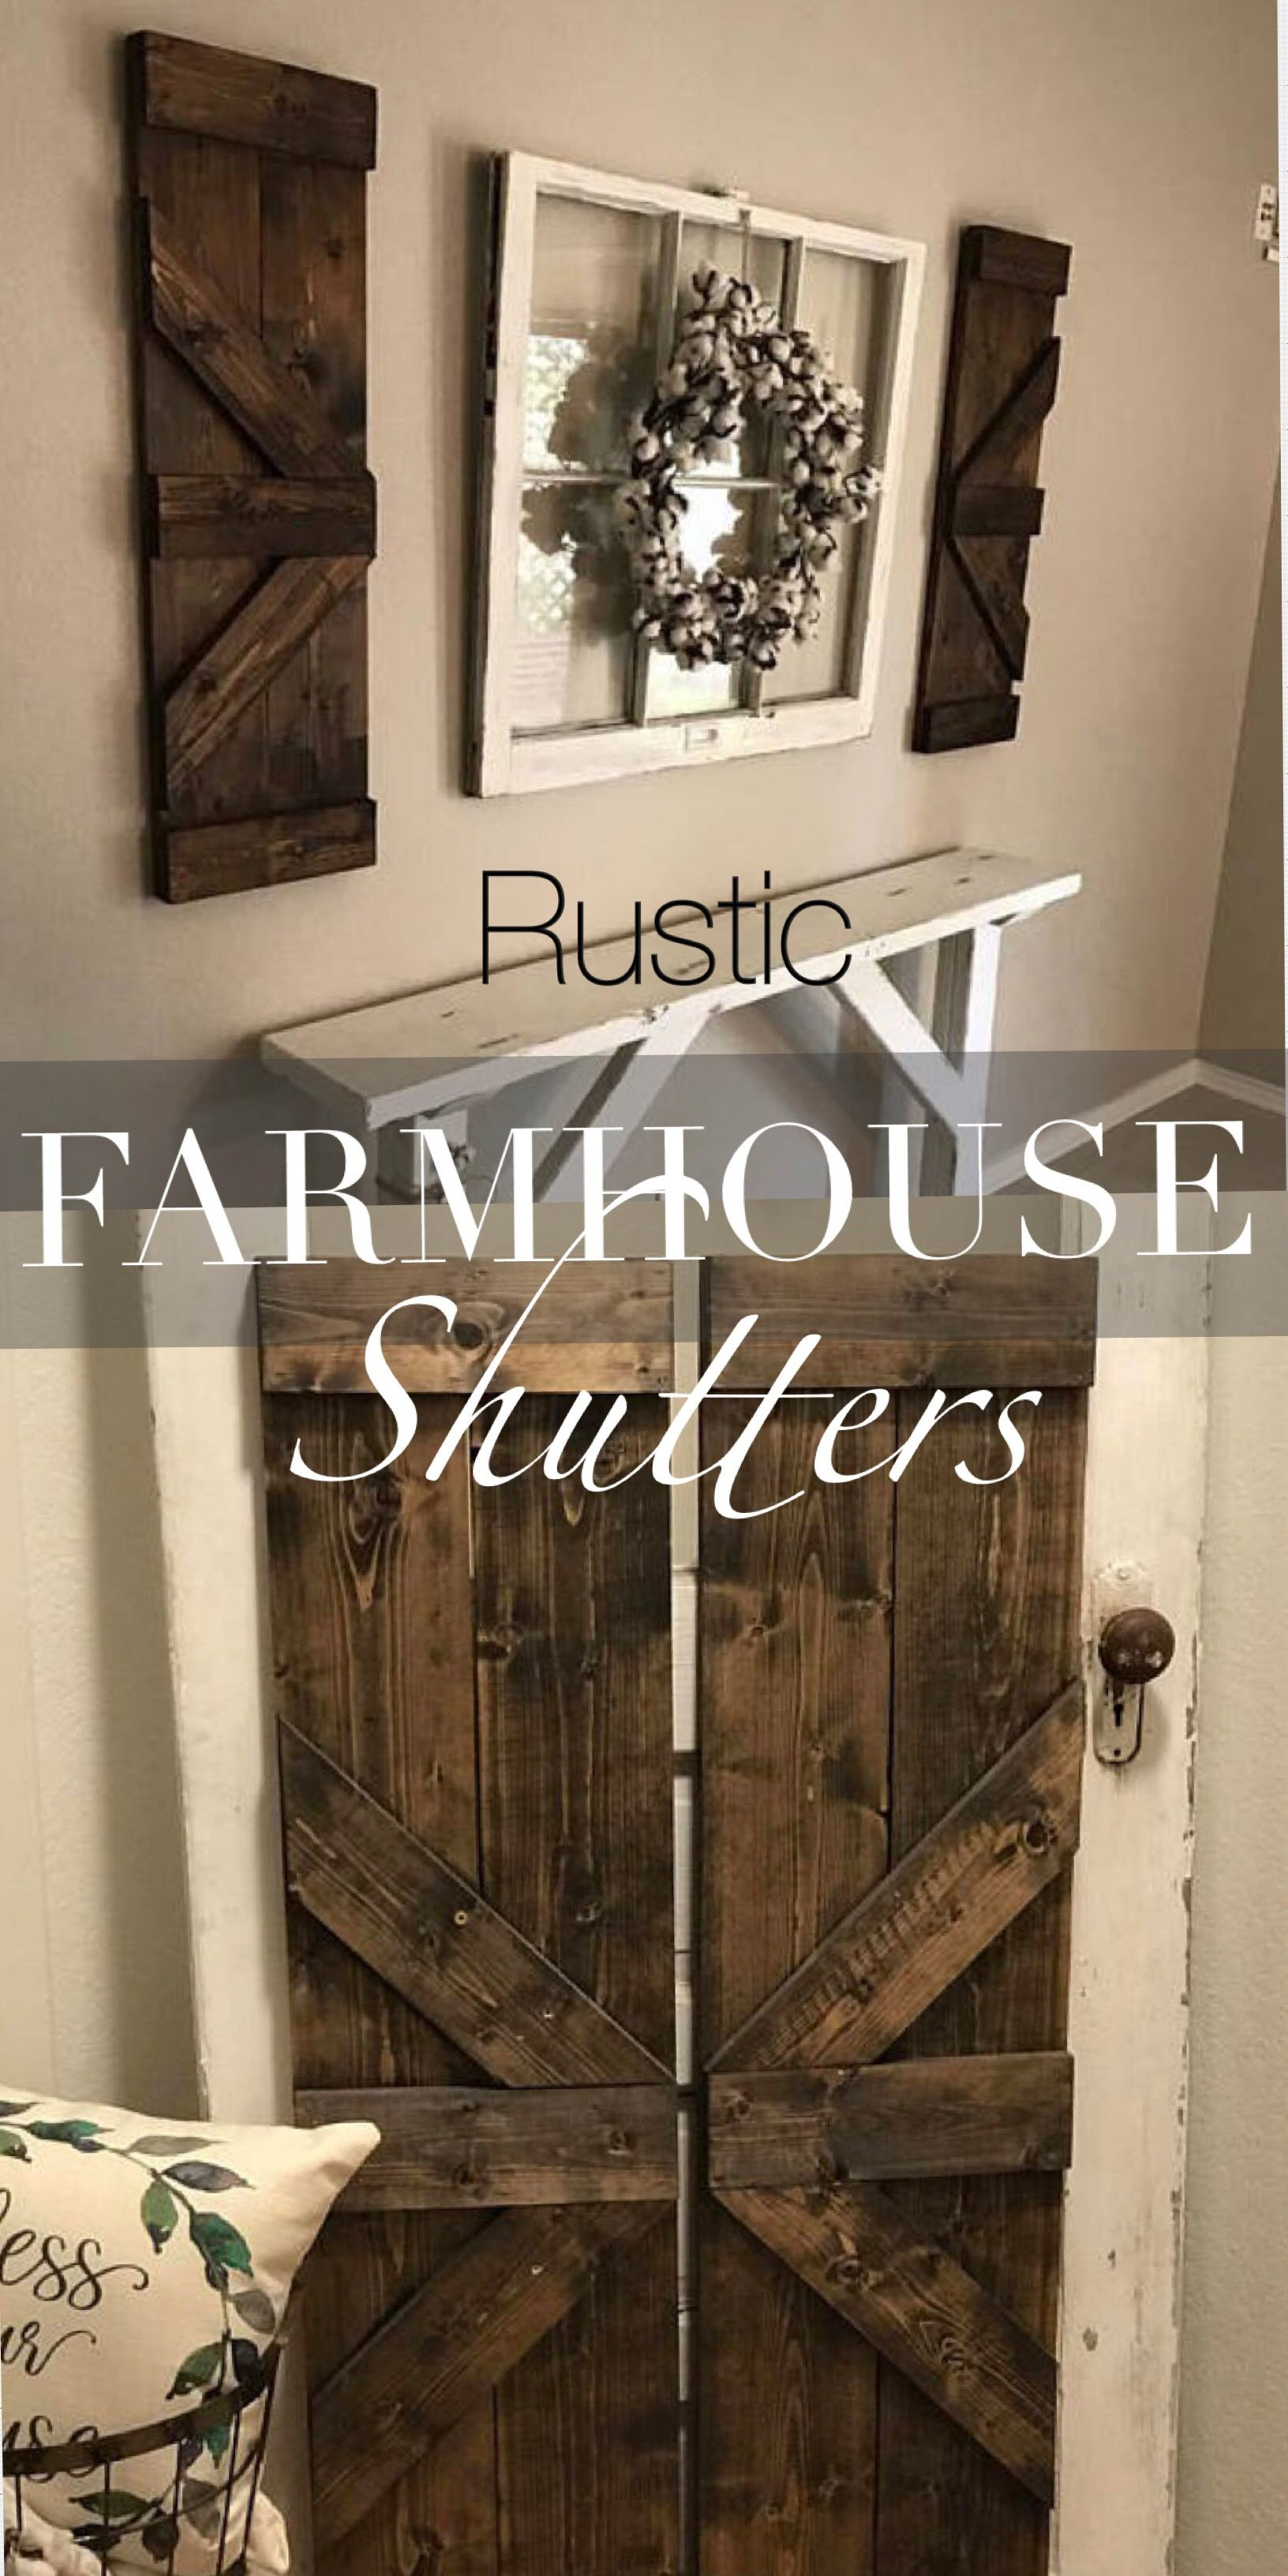 Ad Rustic Farmhouse Style Wood Shutters Perfect For Indoor And Outdoor Decor Put On Either Side Of Shutter Wall Decor Farmhouse Wall Decor Rustic Wall Decor